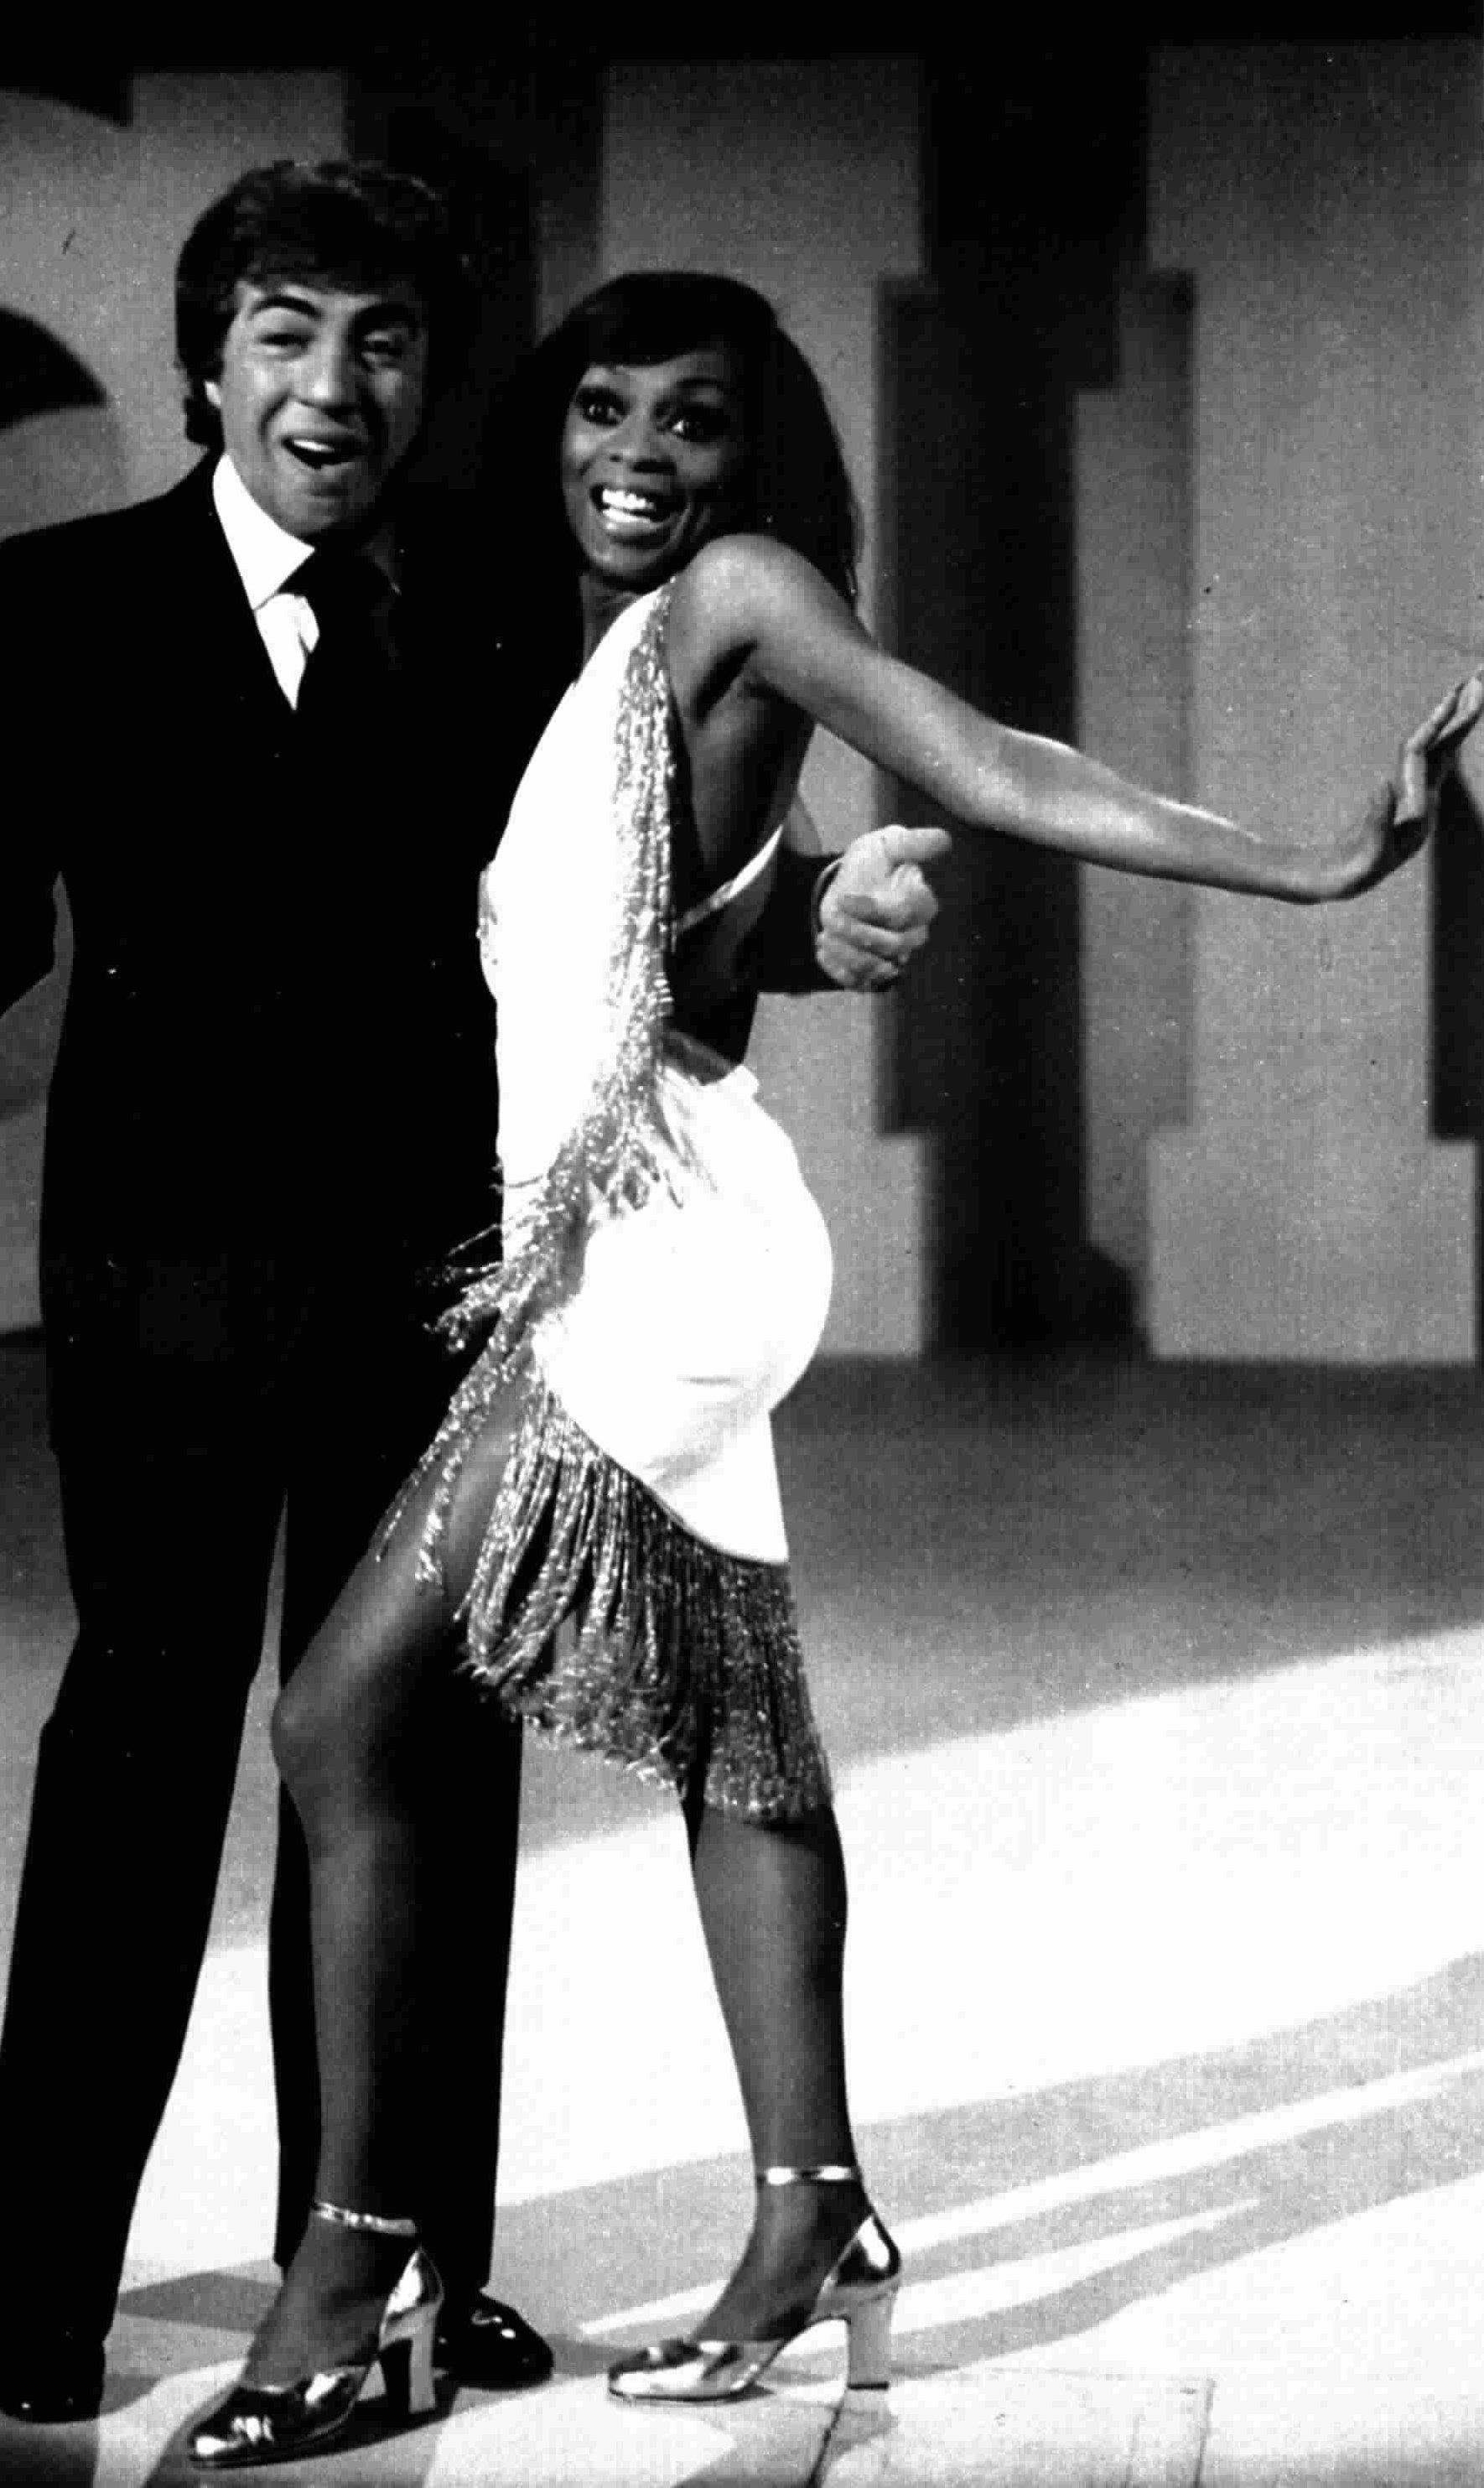 Images Of Lola Falana Awesome file:gino bramieri and lola falana - wikimedia commons